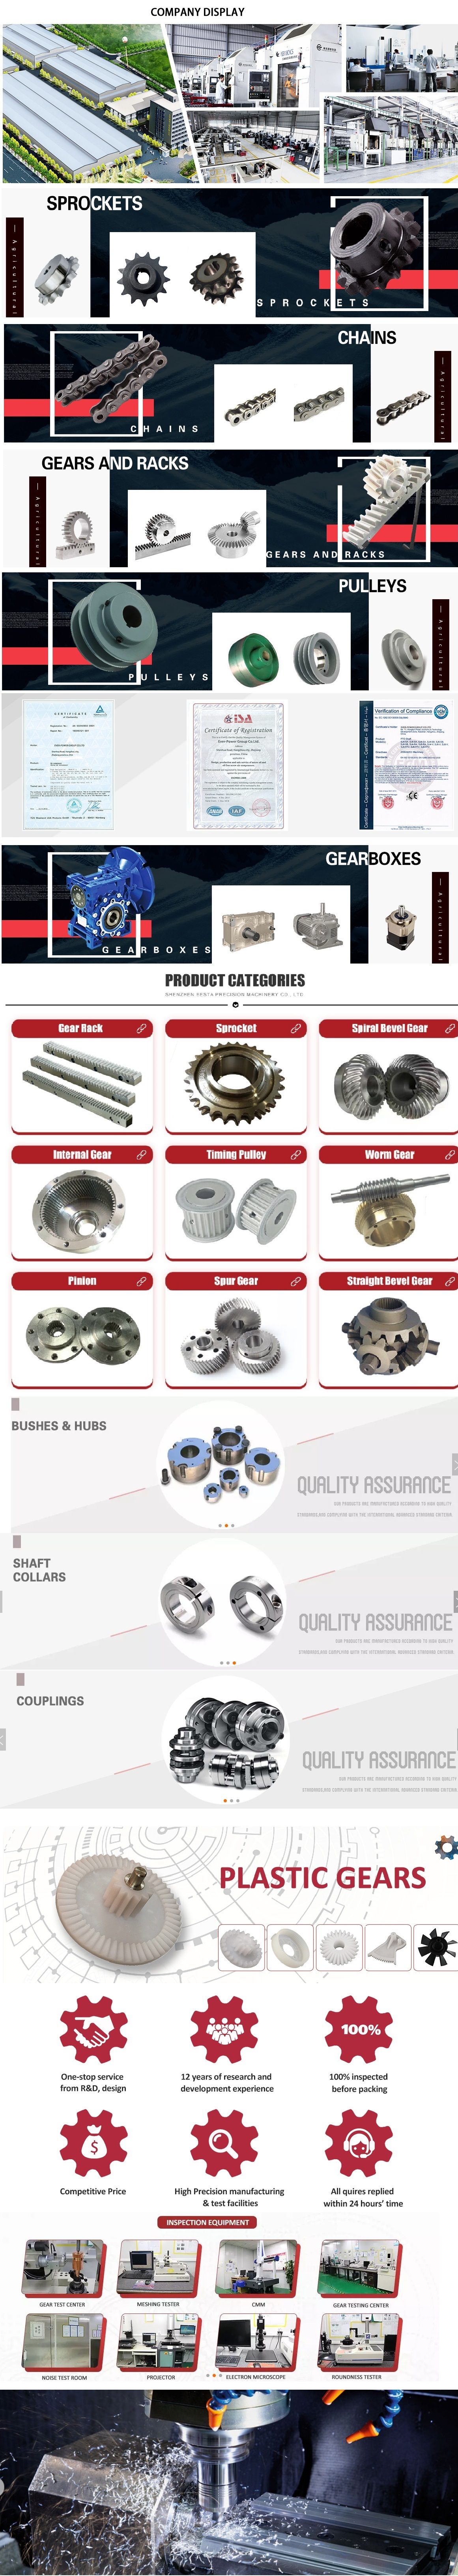 in Ekurhuleni South Africa  sales   price   shop   near me   near me shop   factory   supplier Gearbox Reducer Gearbox Manufacturer Reduction Gearbox with Motor manufacturer   best   Cost   Custom   Cheap   wholesaler